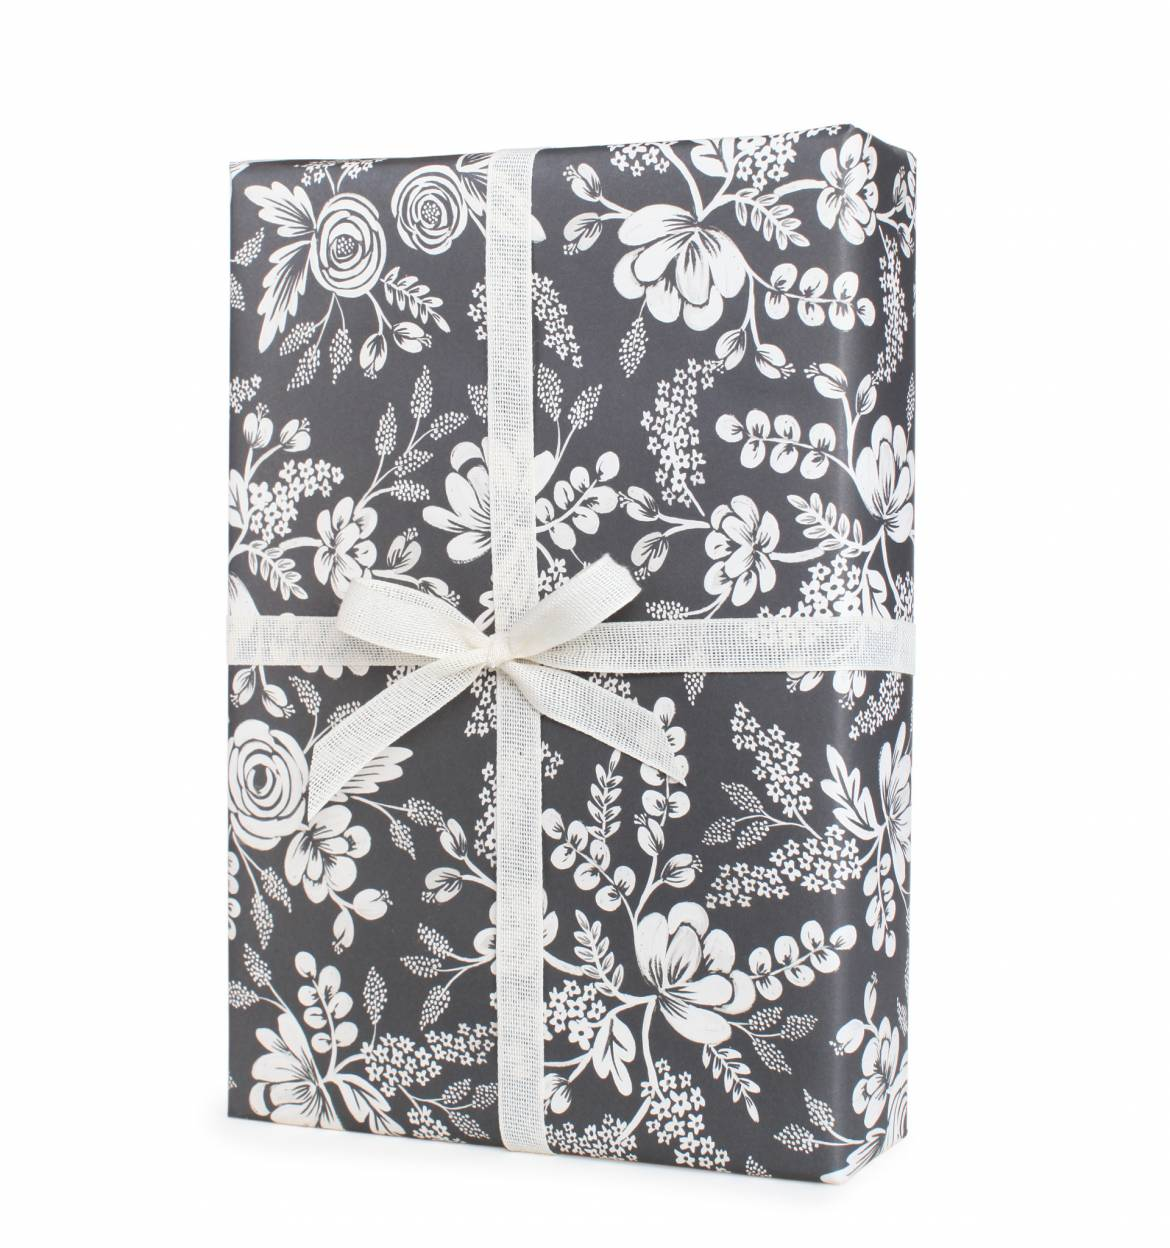 graphite-lace-everyday-wrapping-sheets-01.jpg